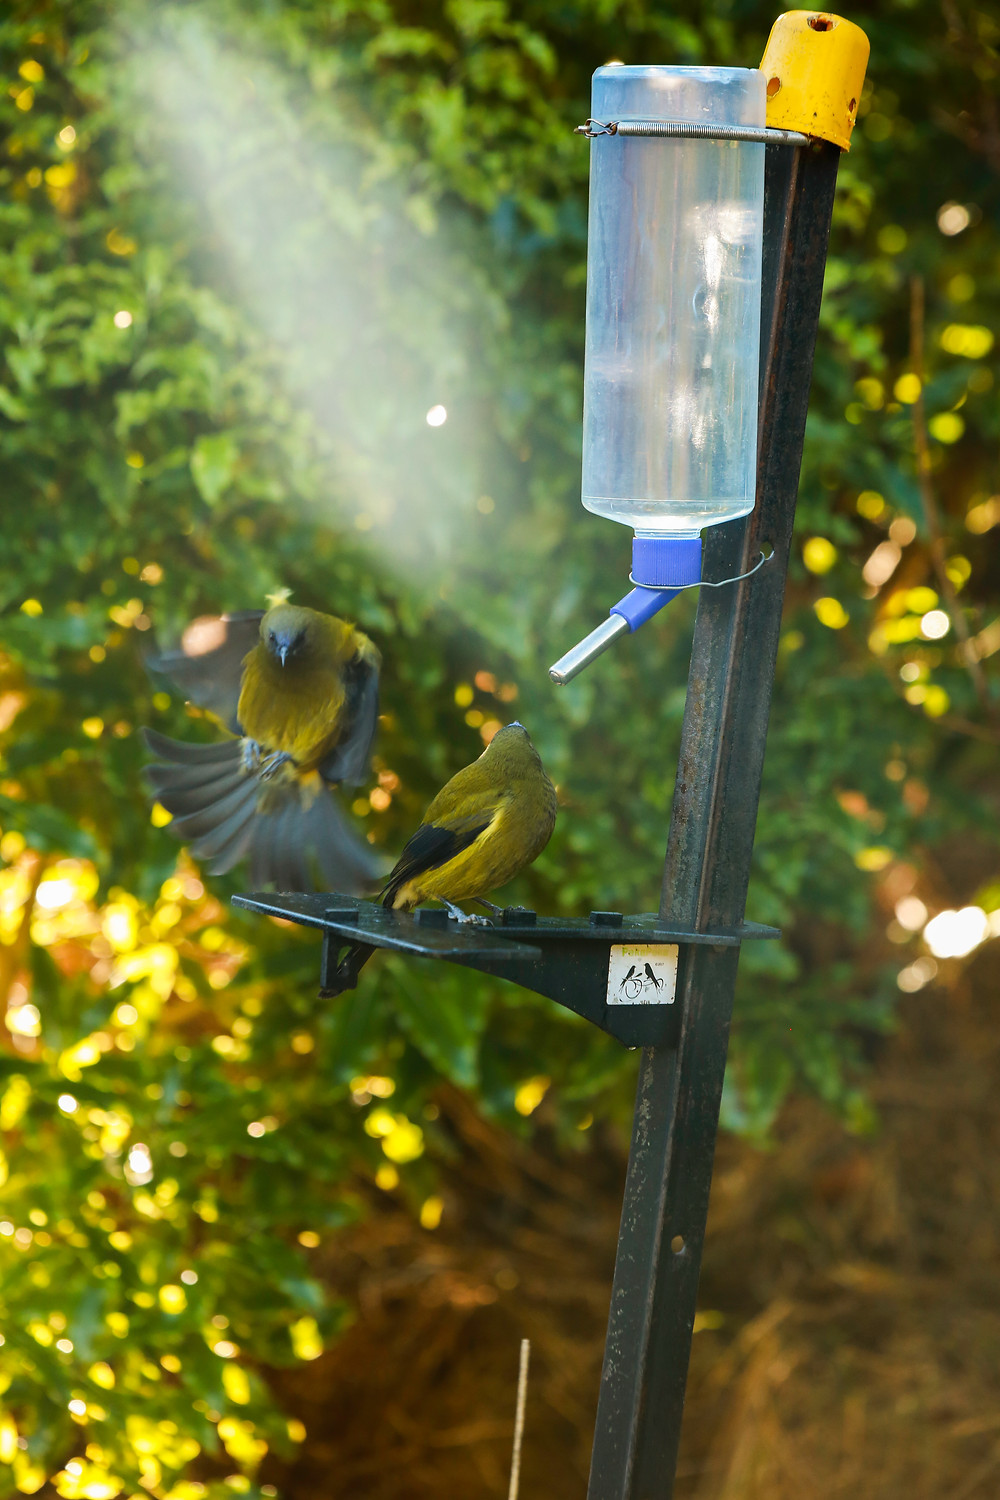 Bellbirds in action at the Peka Peka Feeder